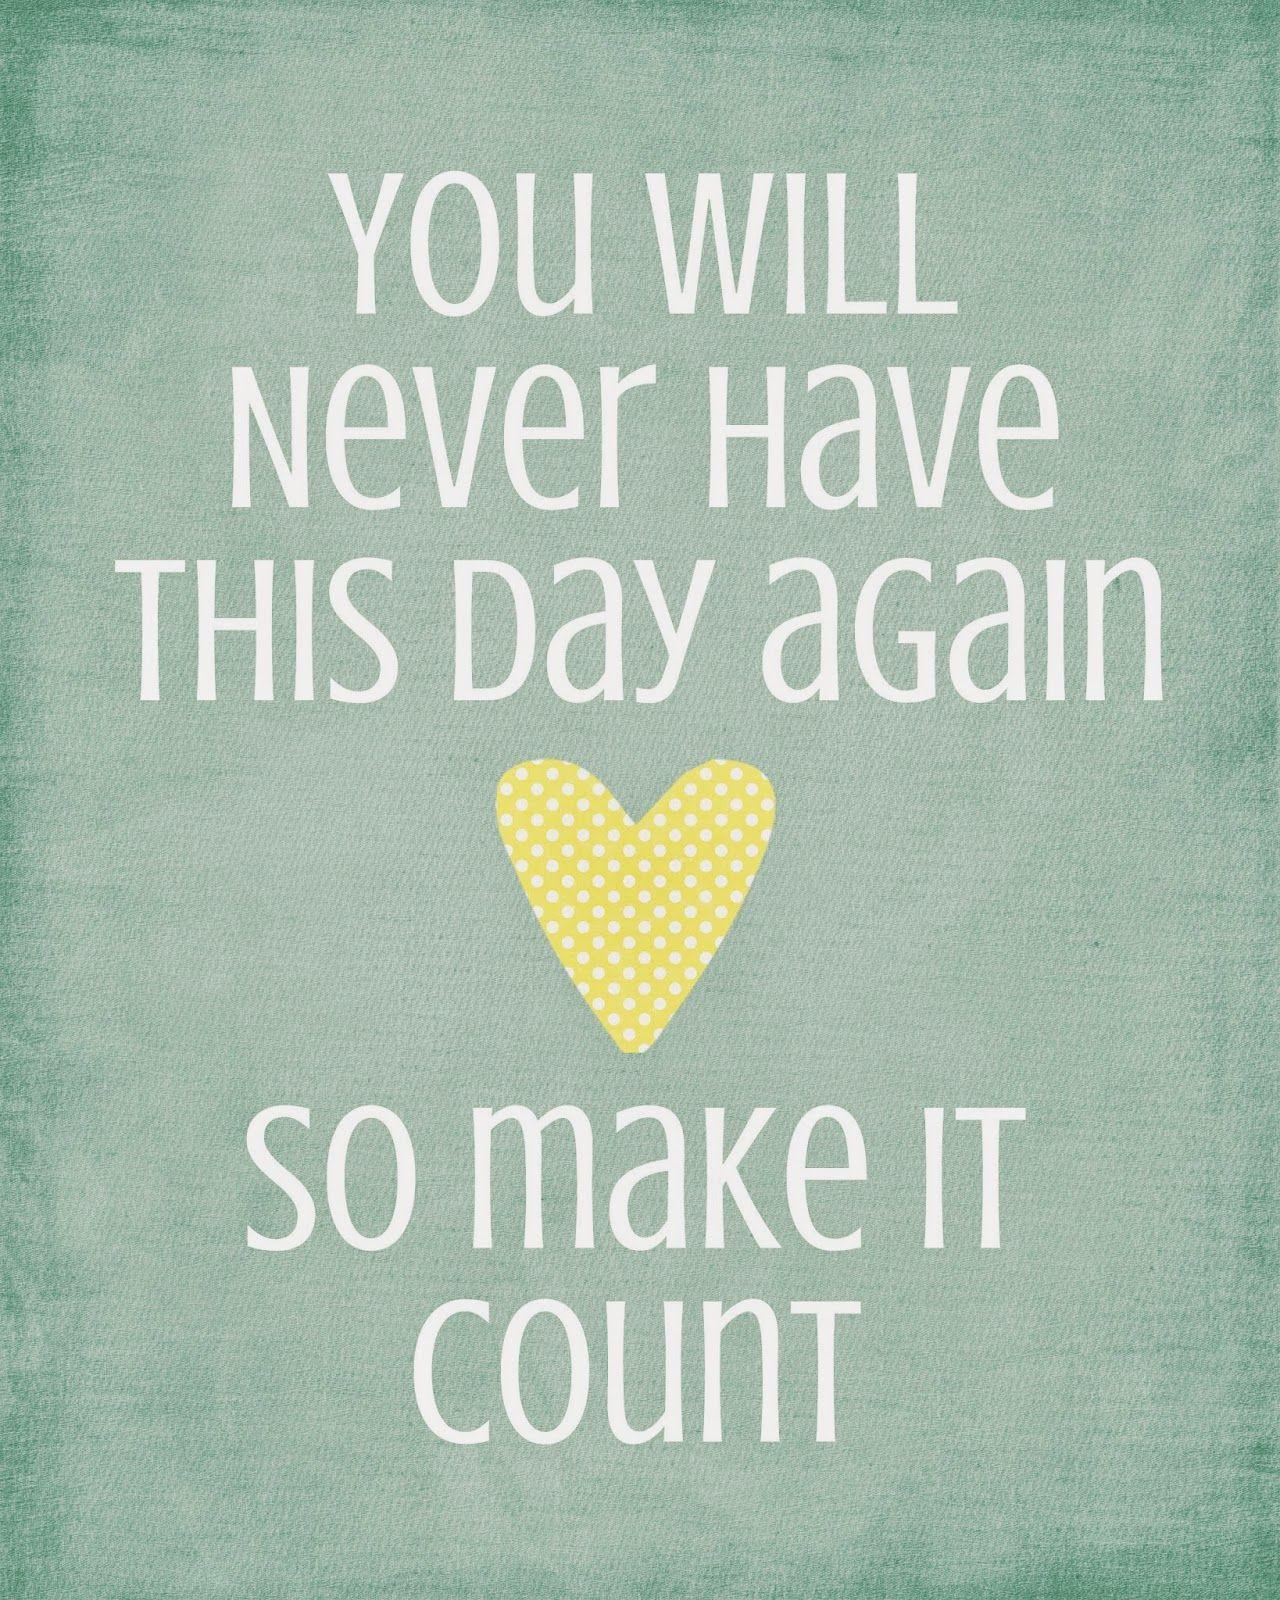 Make the day count